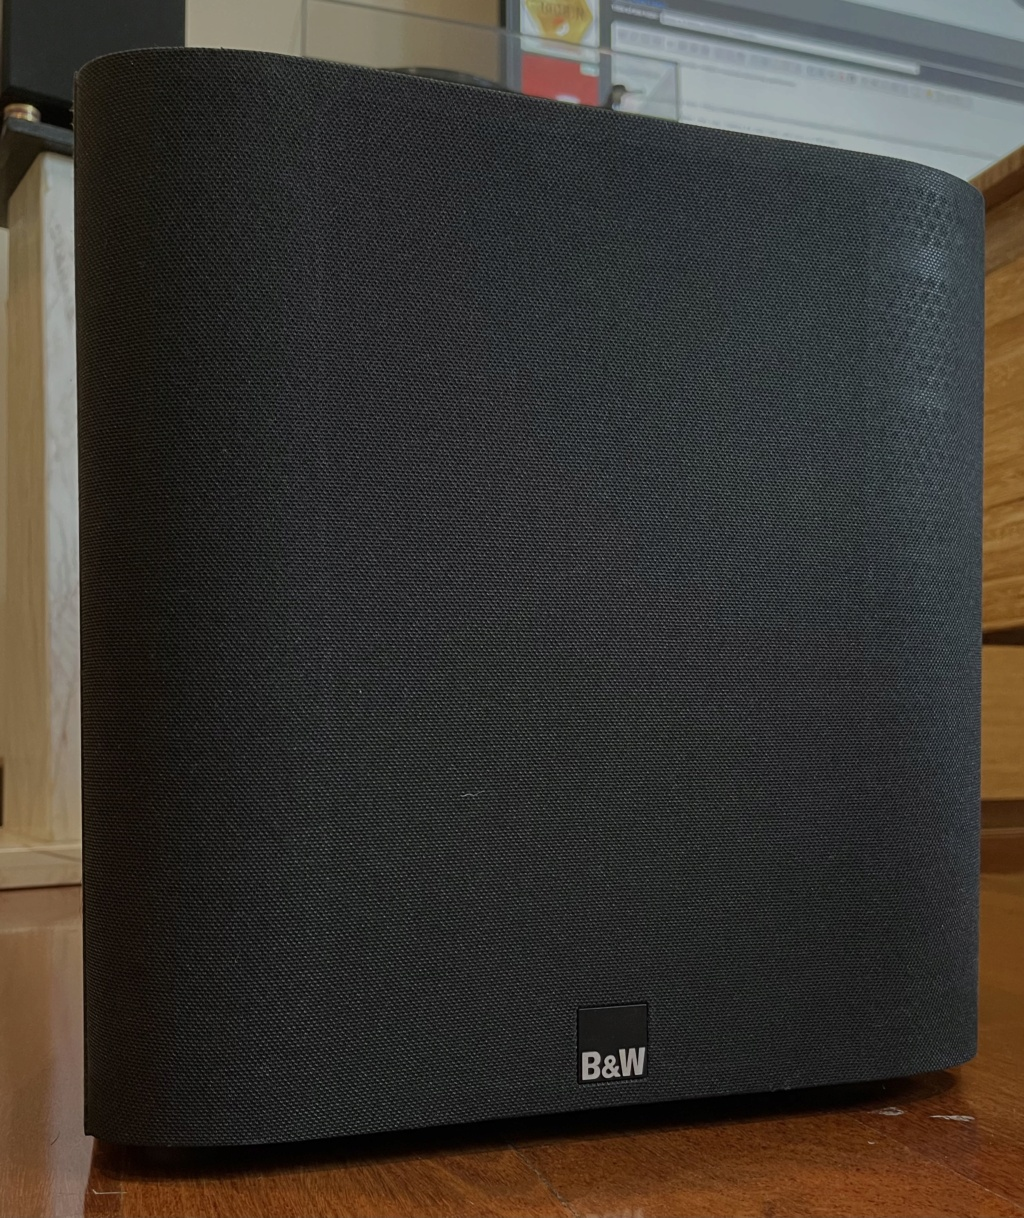 Bowers & Wilkins ASW610XP Subwoofer 70ac6e10